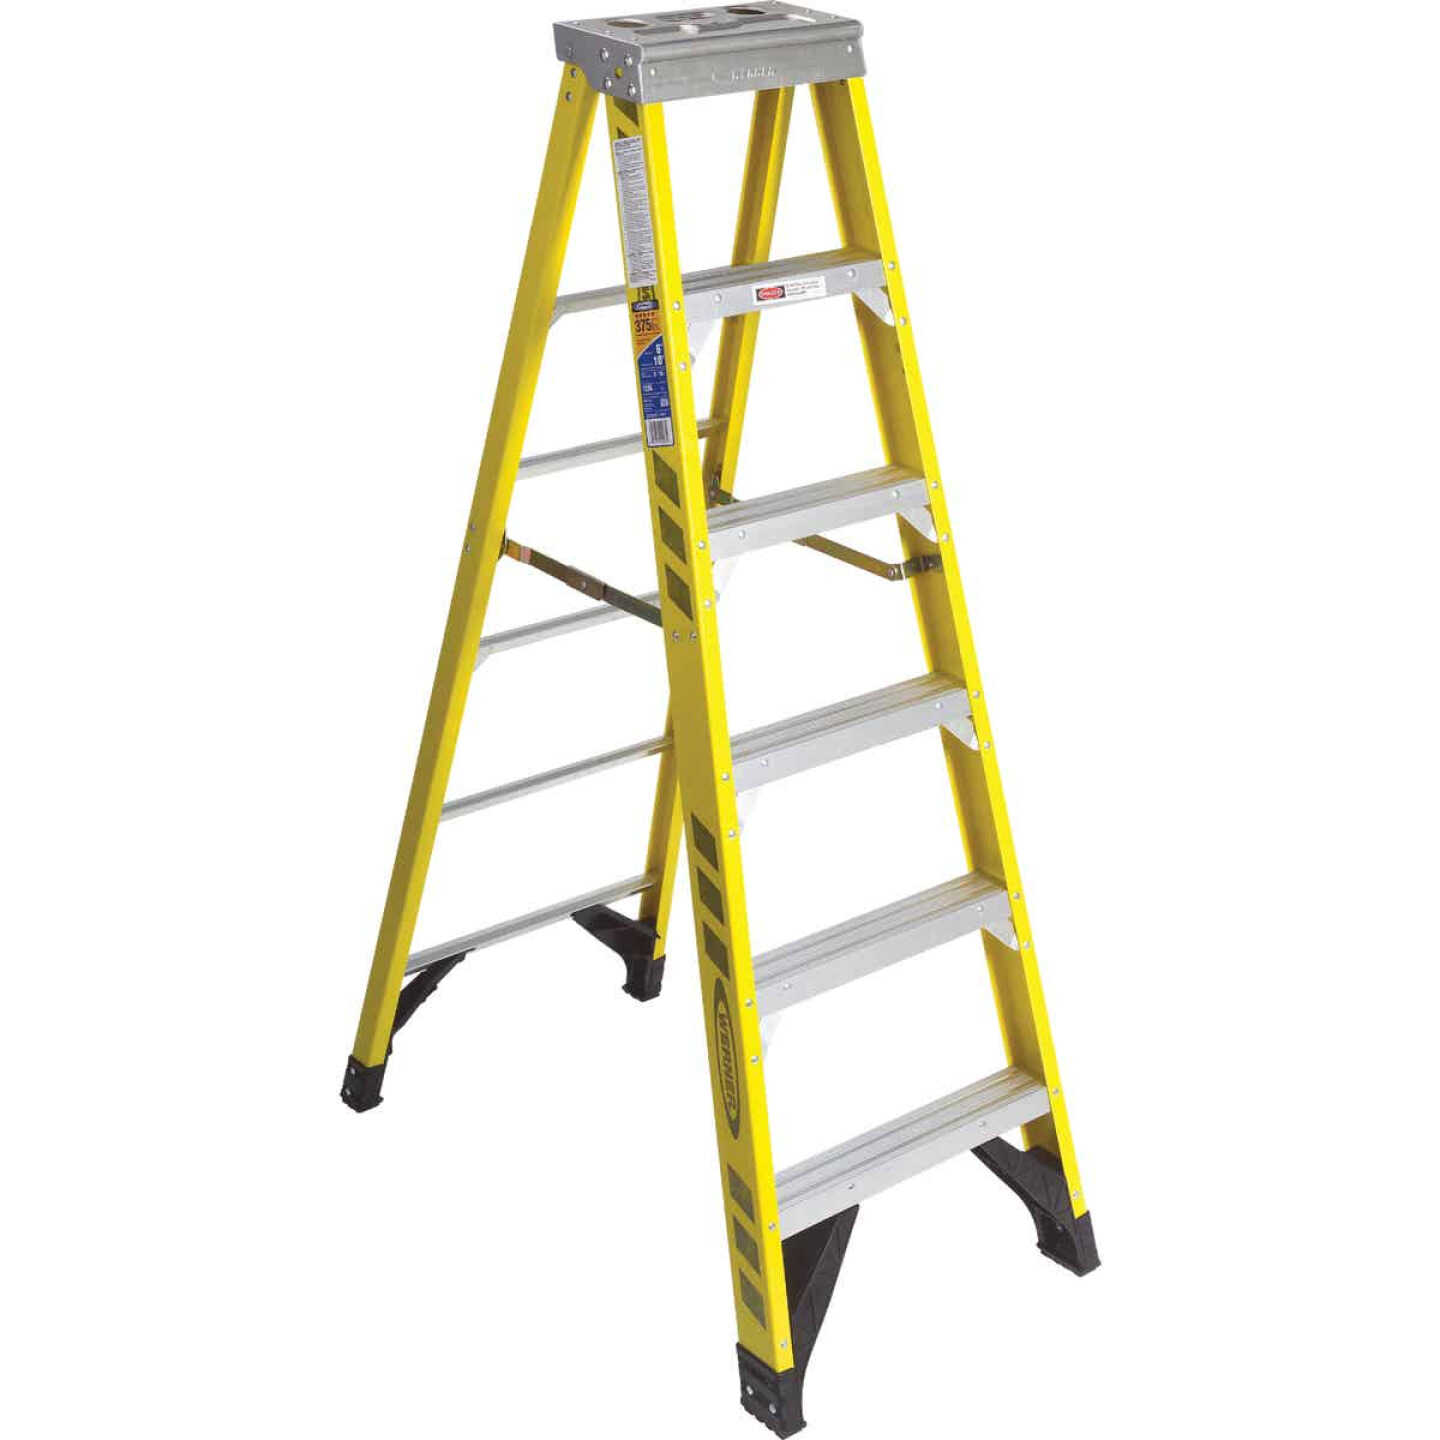 Werner 6 Ft. Fiberglass Step Ladder with 375 Lb. Load Capacity Type IAA Ladder Rating Image 1